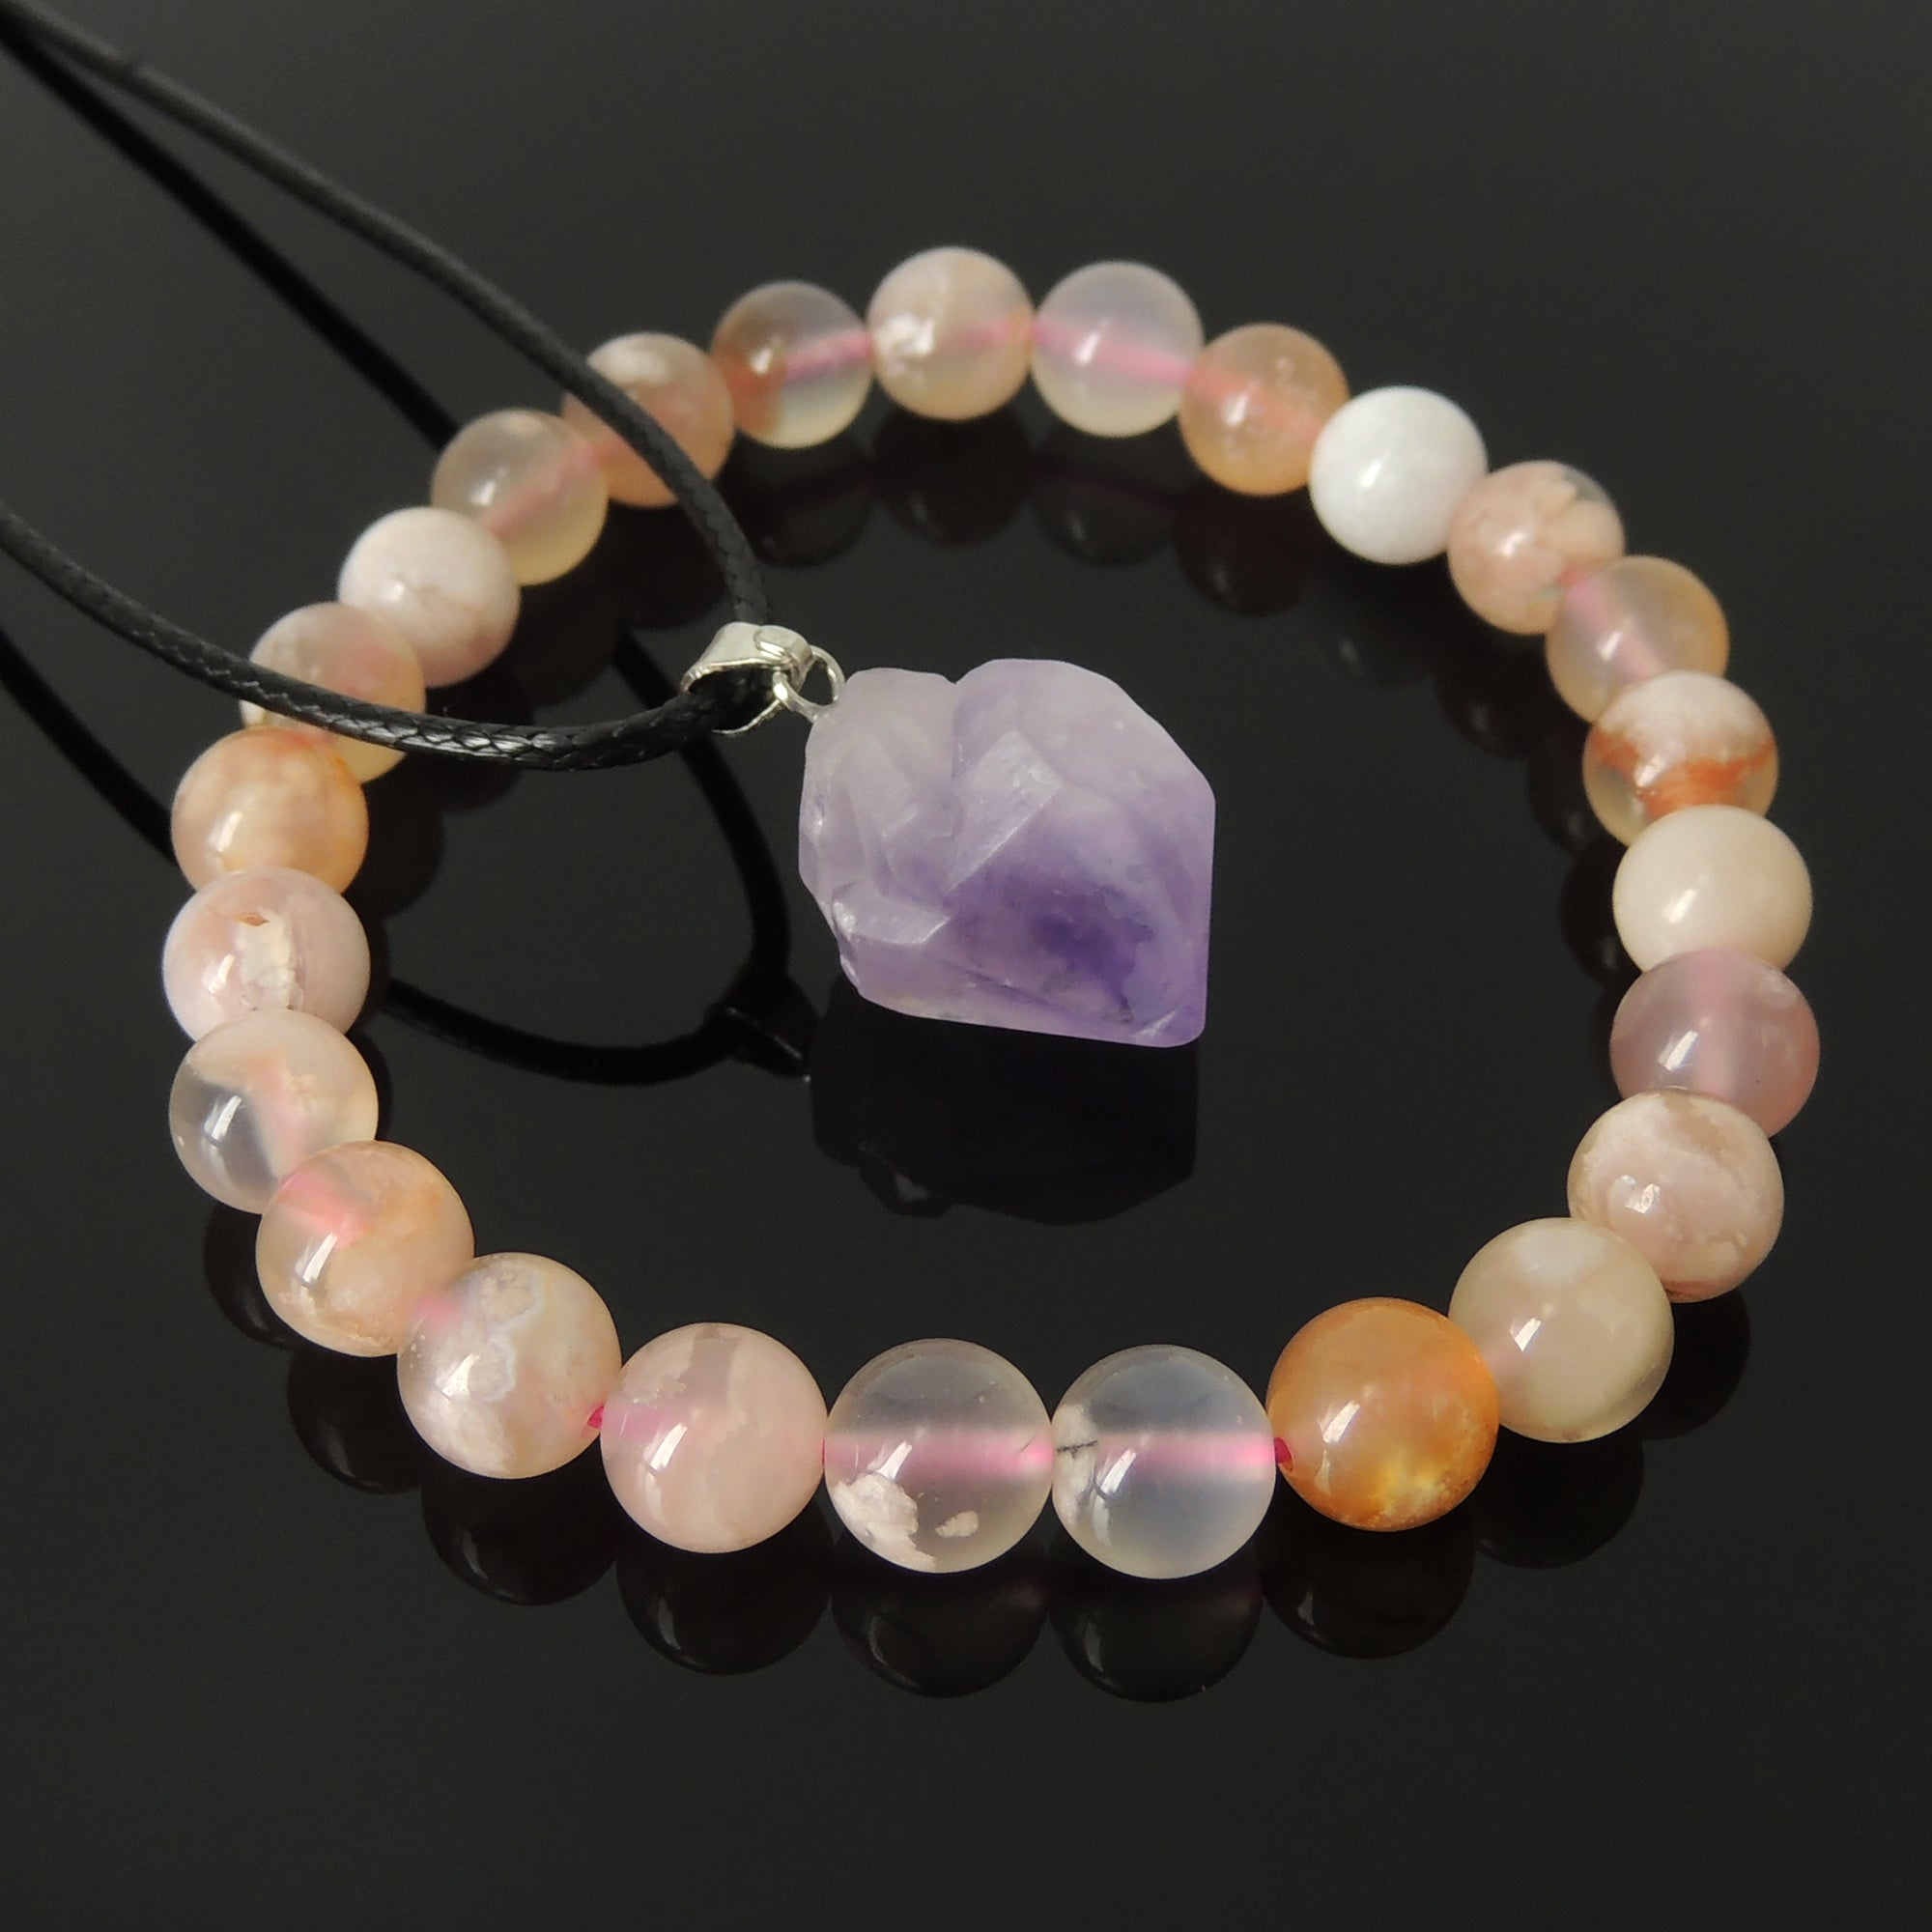 Wellness Gift Set | Genuine Flower Agate Gemstone Bracelet | Raw Amethyst Crystal Pendant Necklace | The perfect gift for loved ones, friends, and family | Energy Healing, Reiki Infused, Loving Chakra Stones